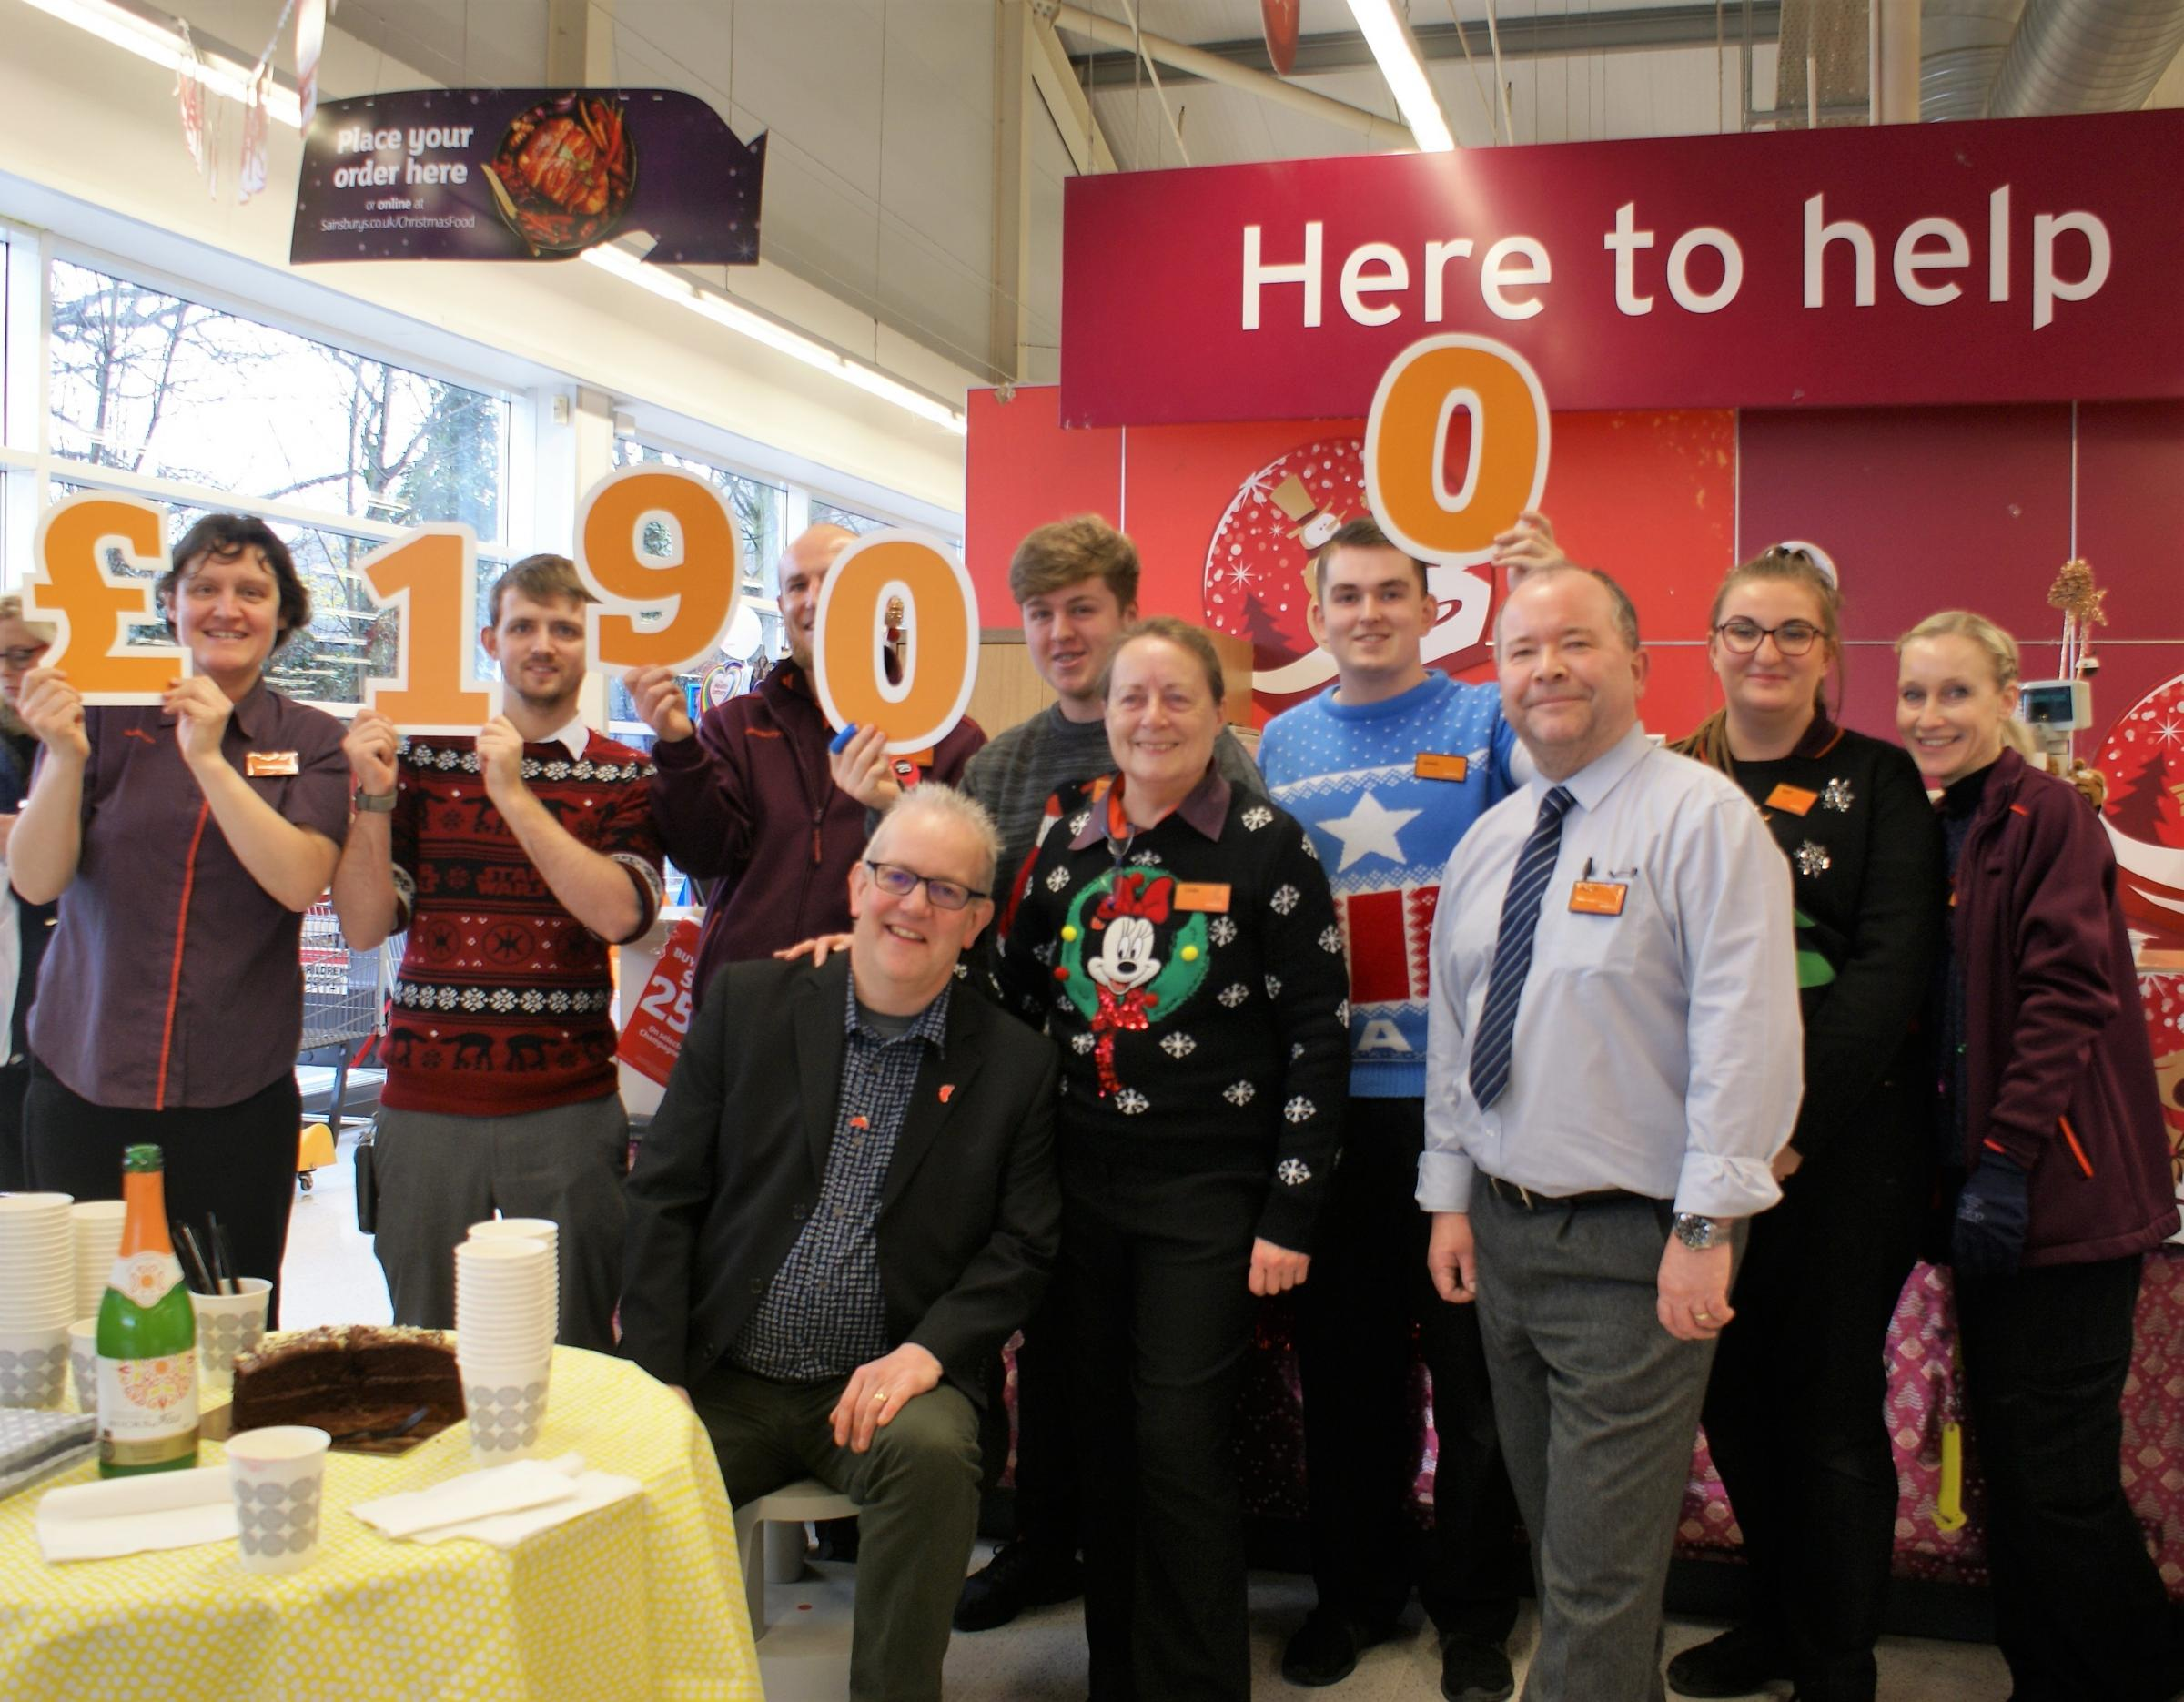 Sainsbury's Otley staff presenting £1,900 to Elliot's Footprint founder John Kerslake (seated)